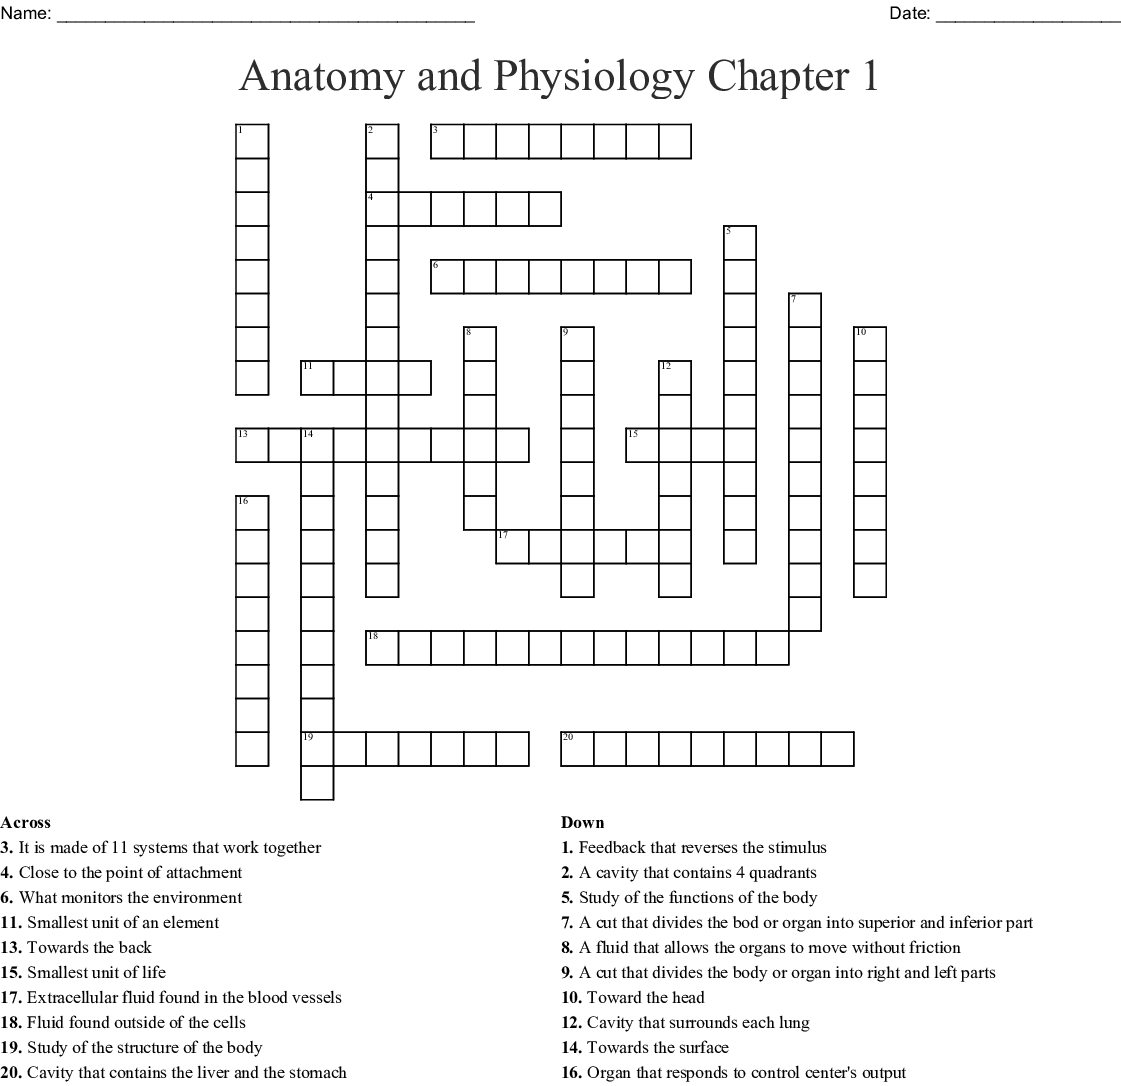 Anatomy and Physiology Chapter 1 Vocab Crossword - WordMint